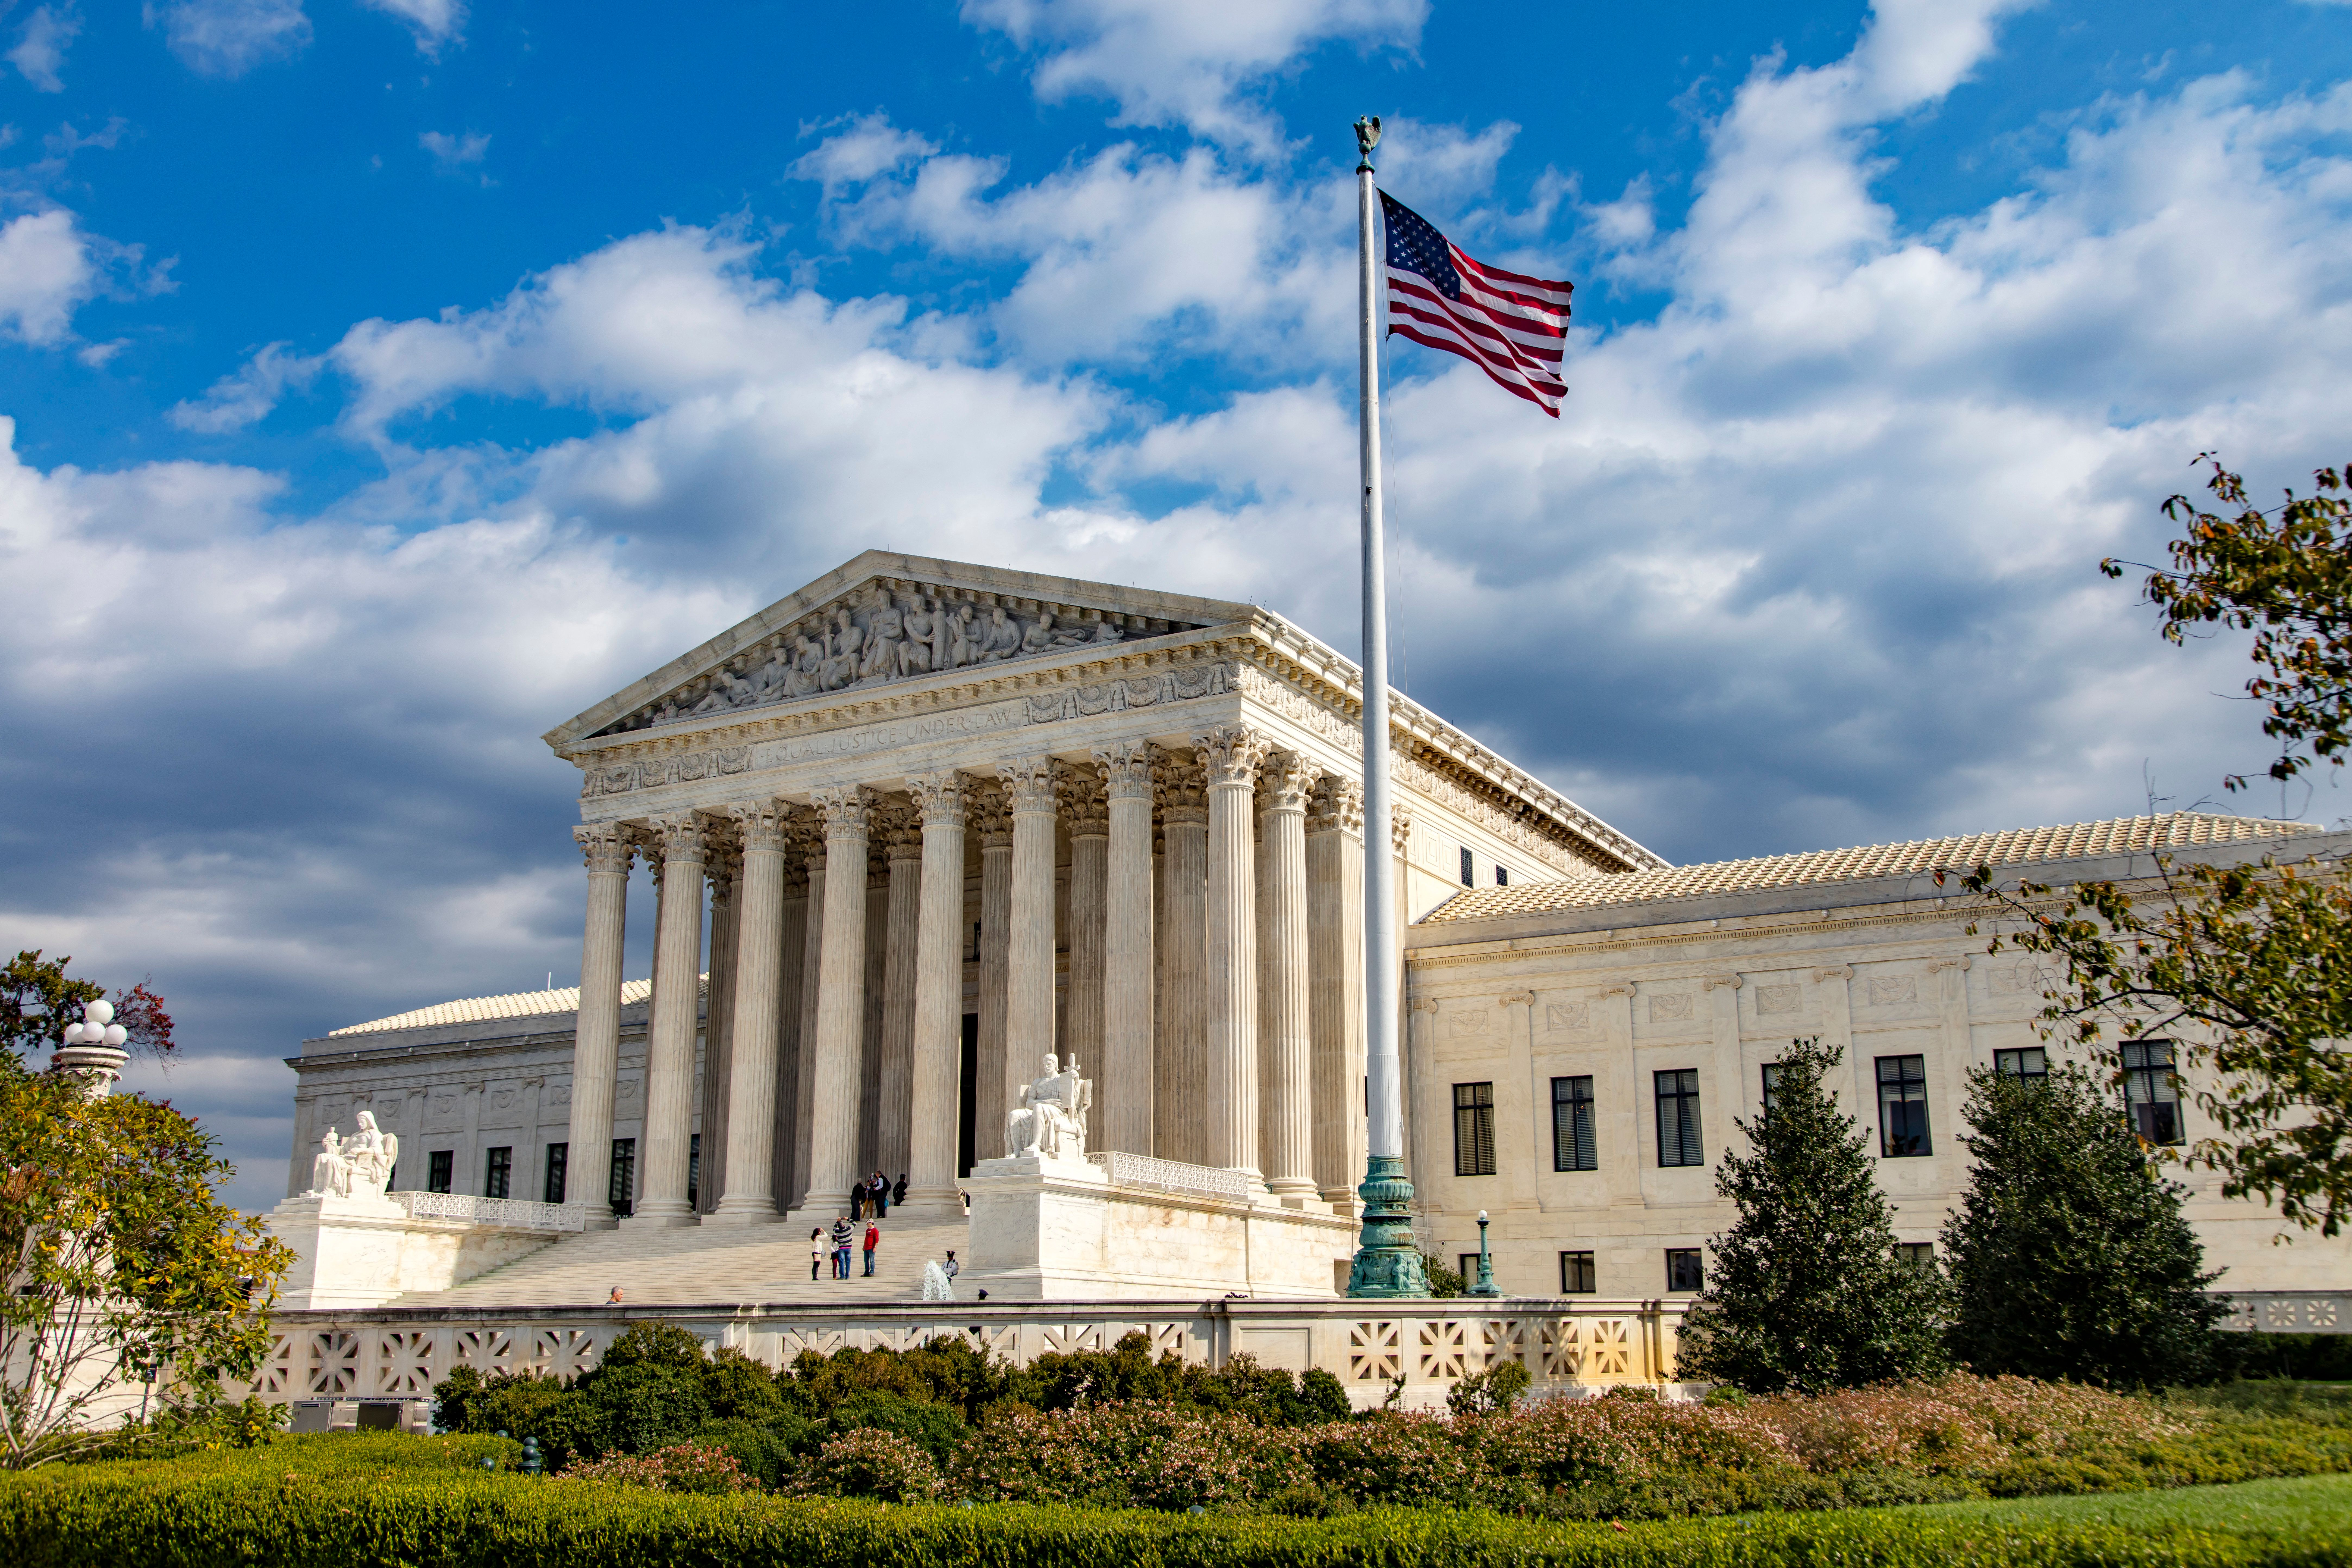 An angular, landscape view of the US Supreme Court building in Washington DC. The few people in the image are on the steps leading up to the entrance.